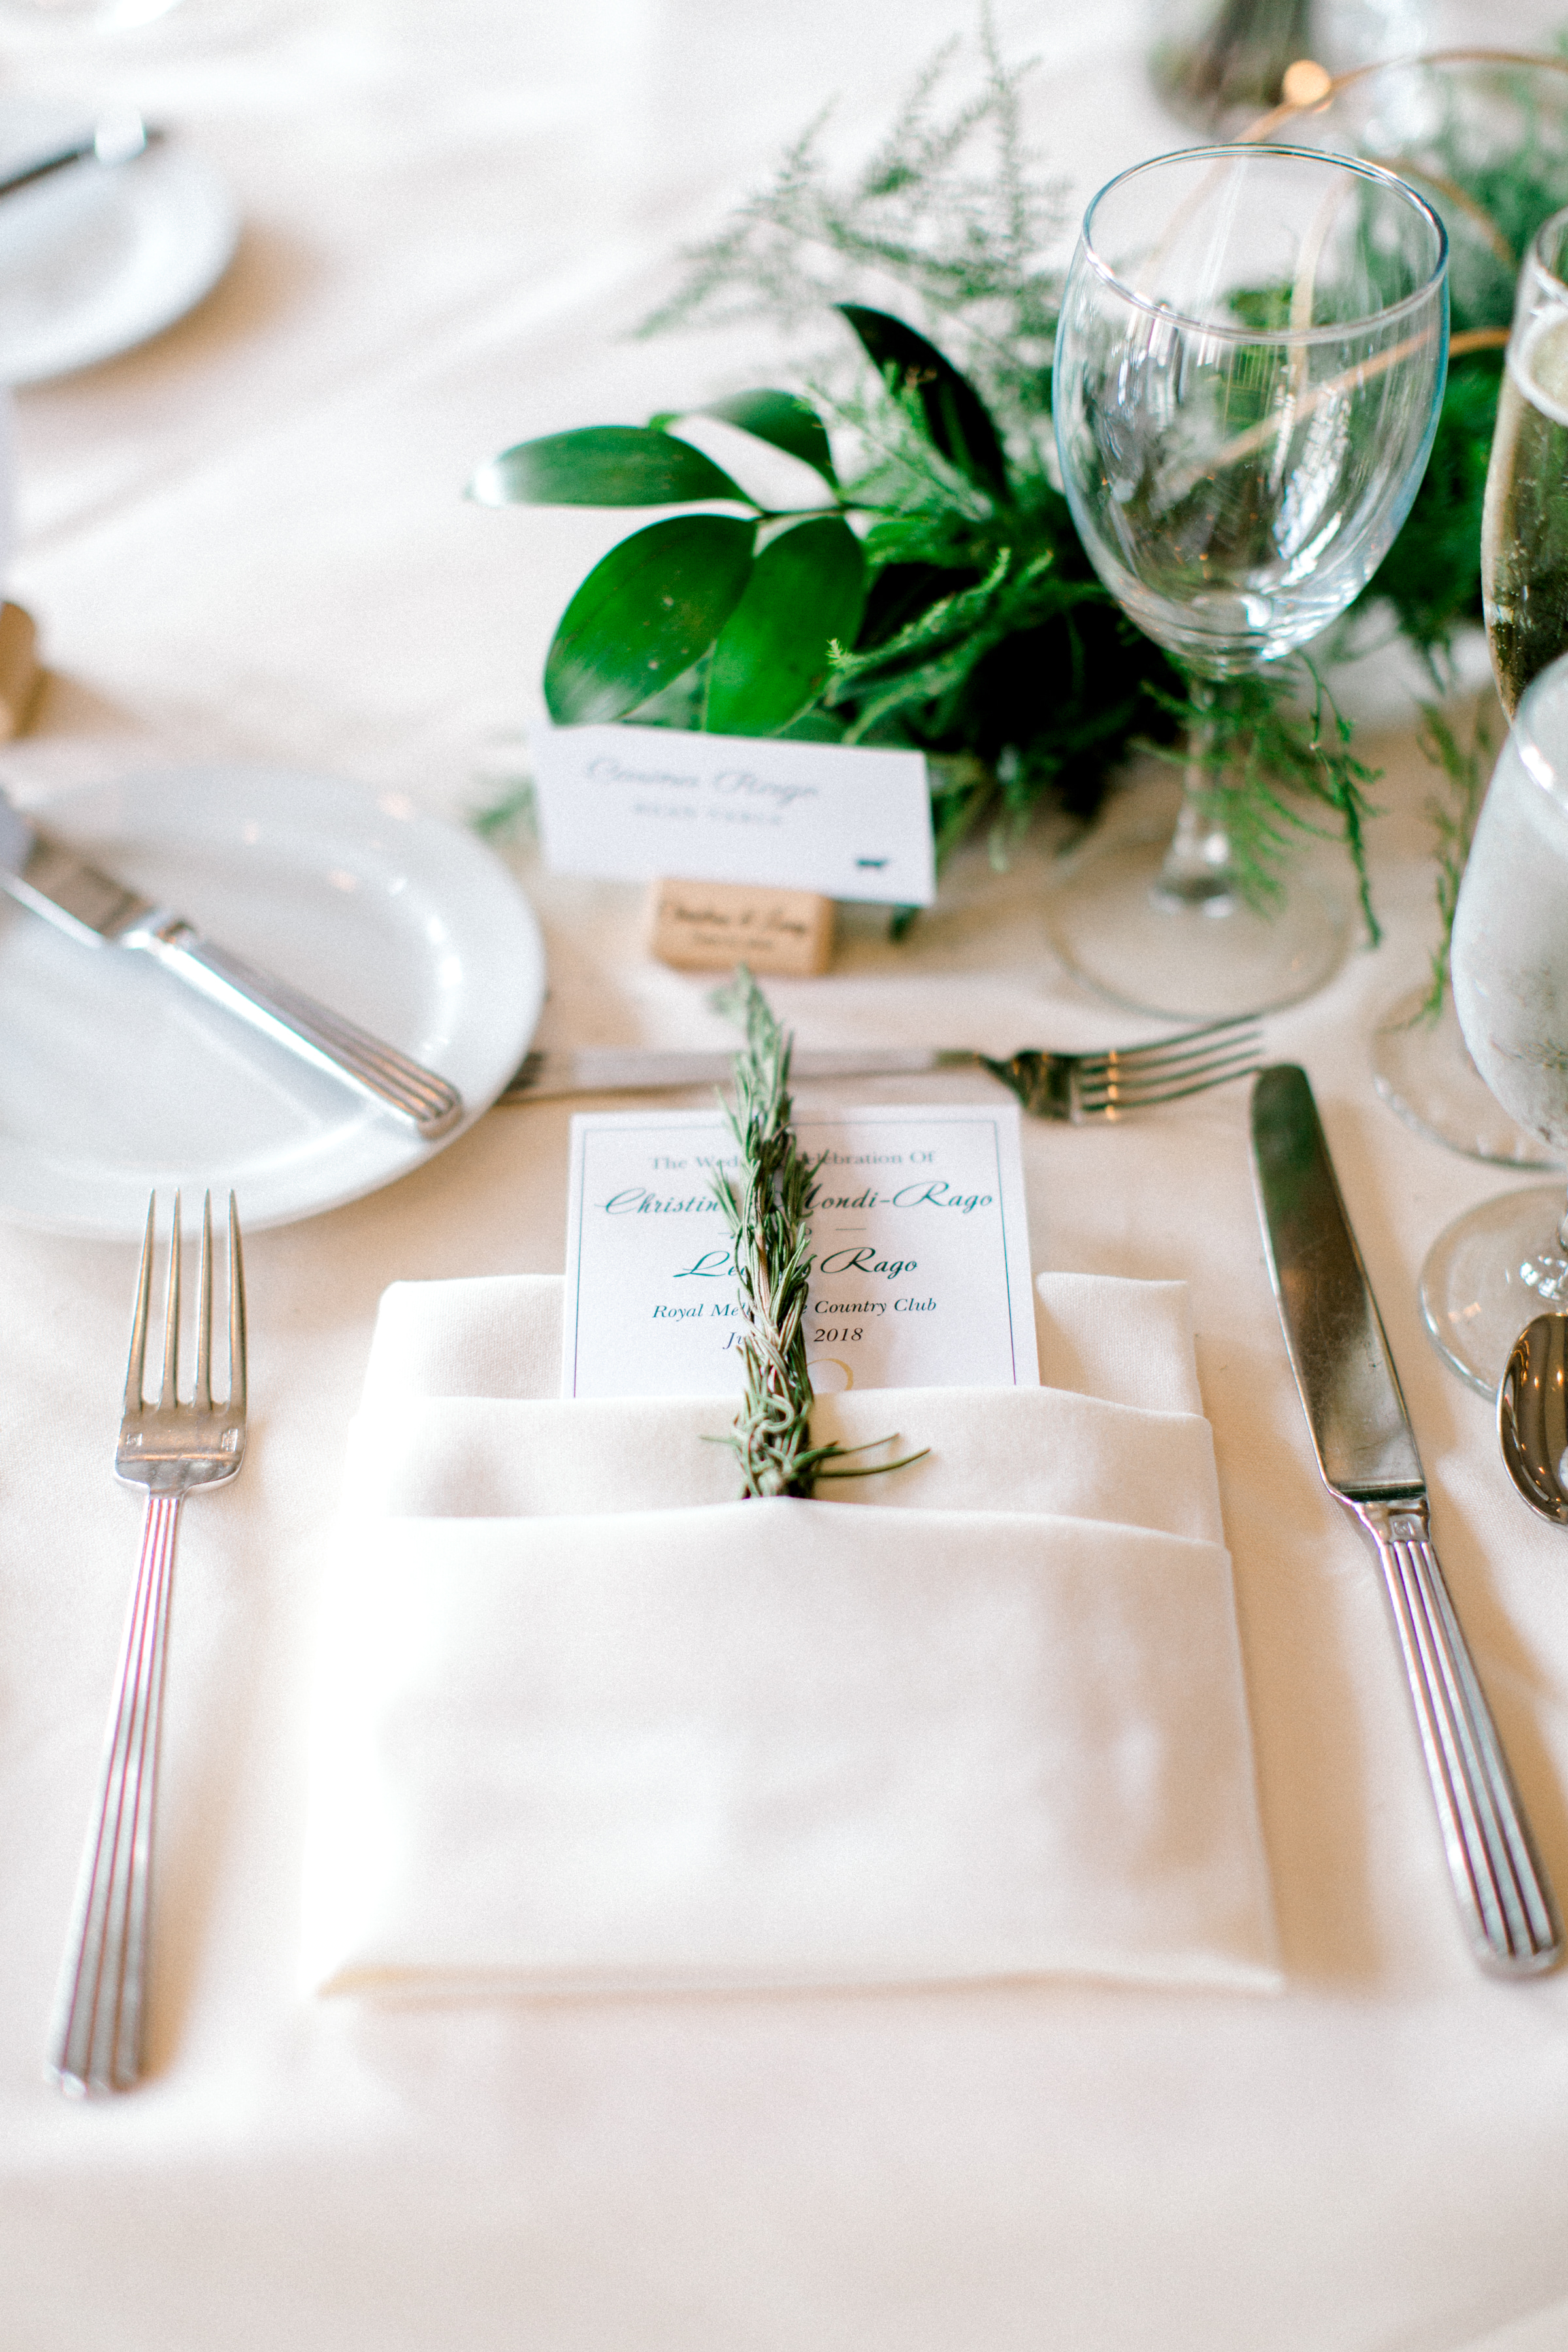 Wedding Details, sprig of Rosemary in napkin Spring Chicago Wedding planned by Your Day by MK